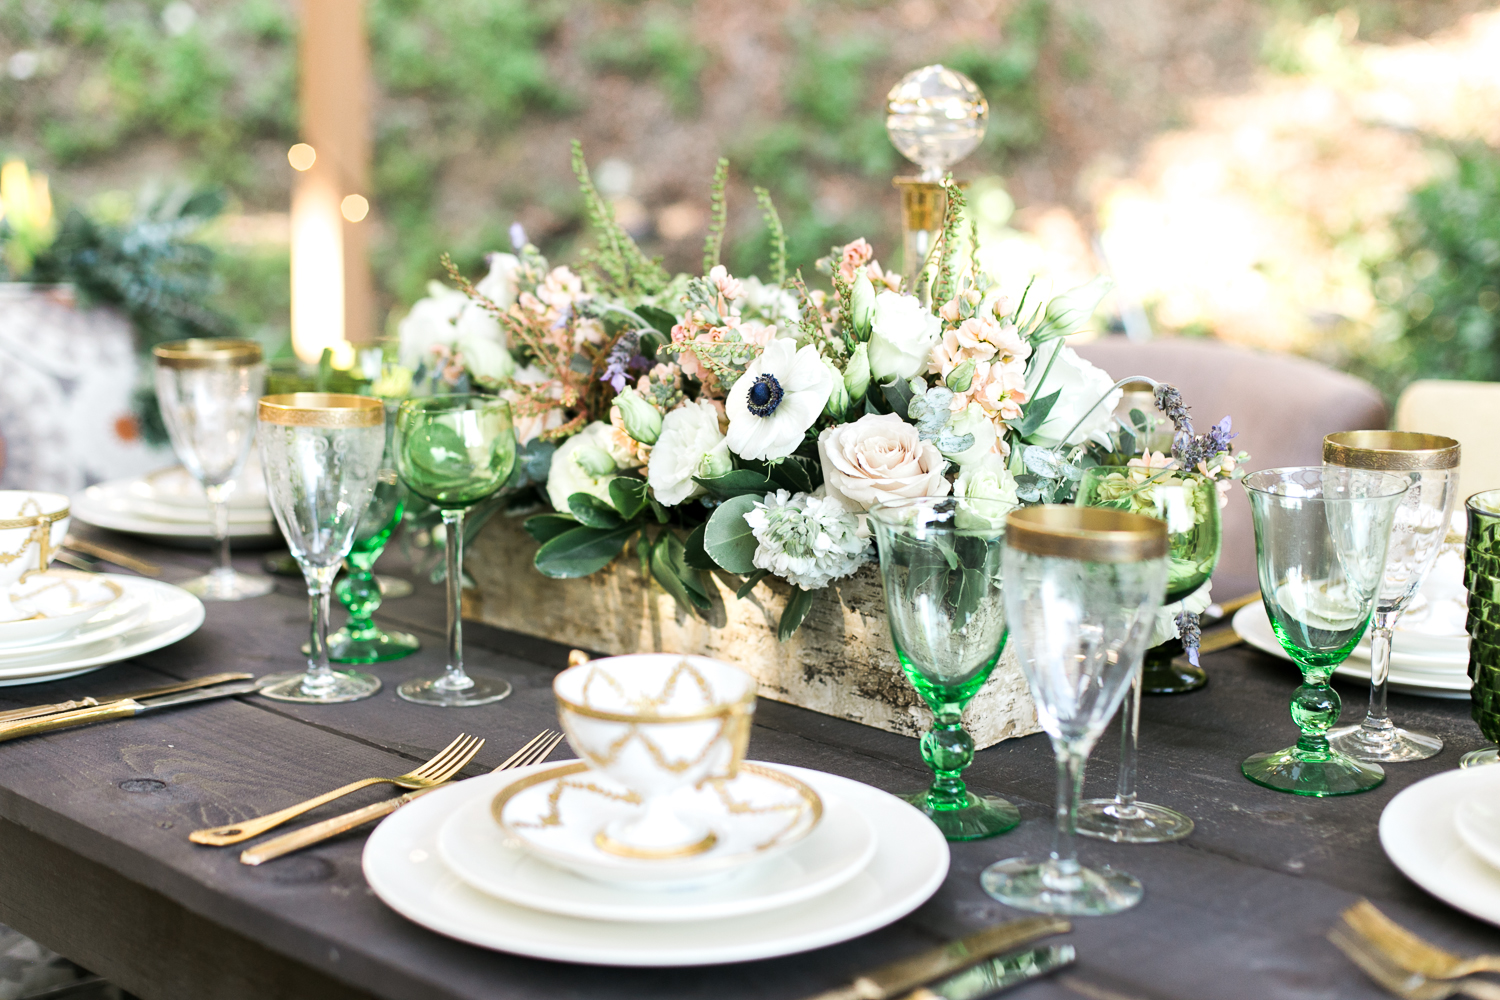 170429 Tablescape Styled Shoot-22